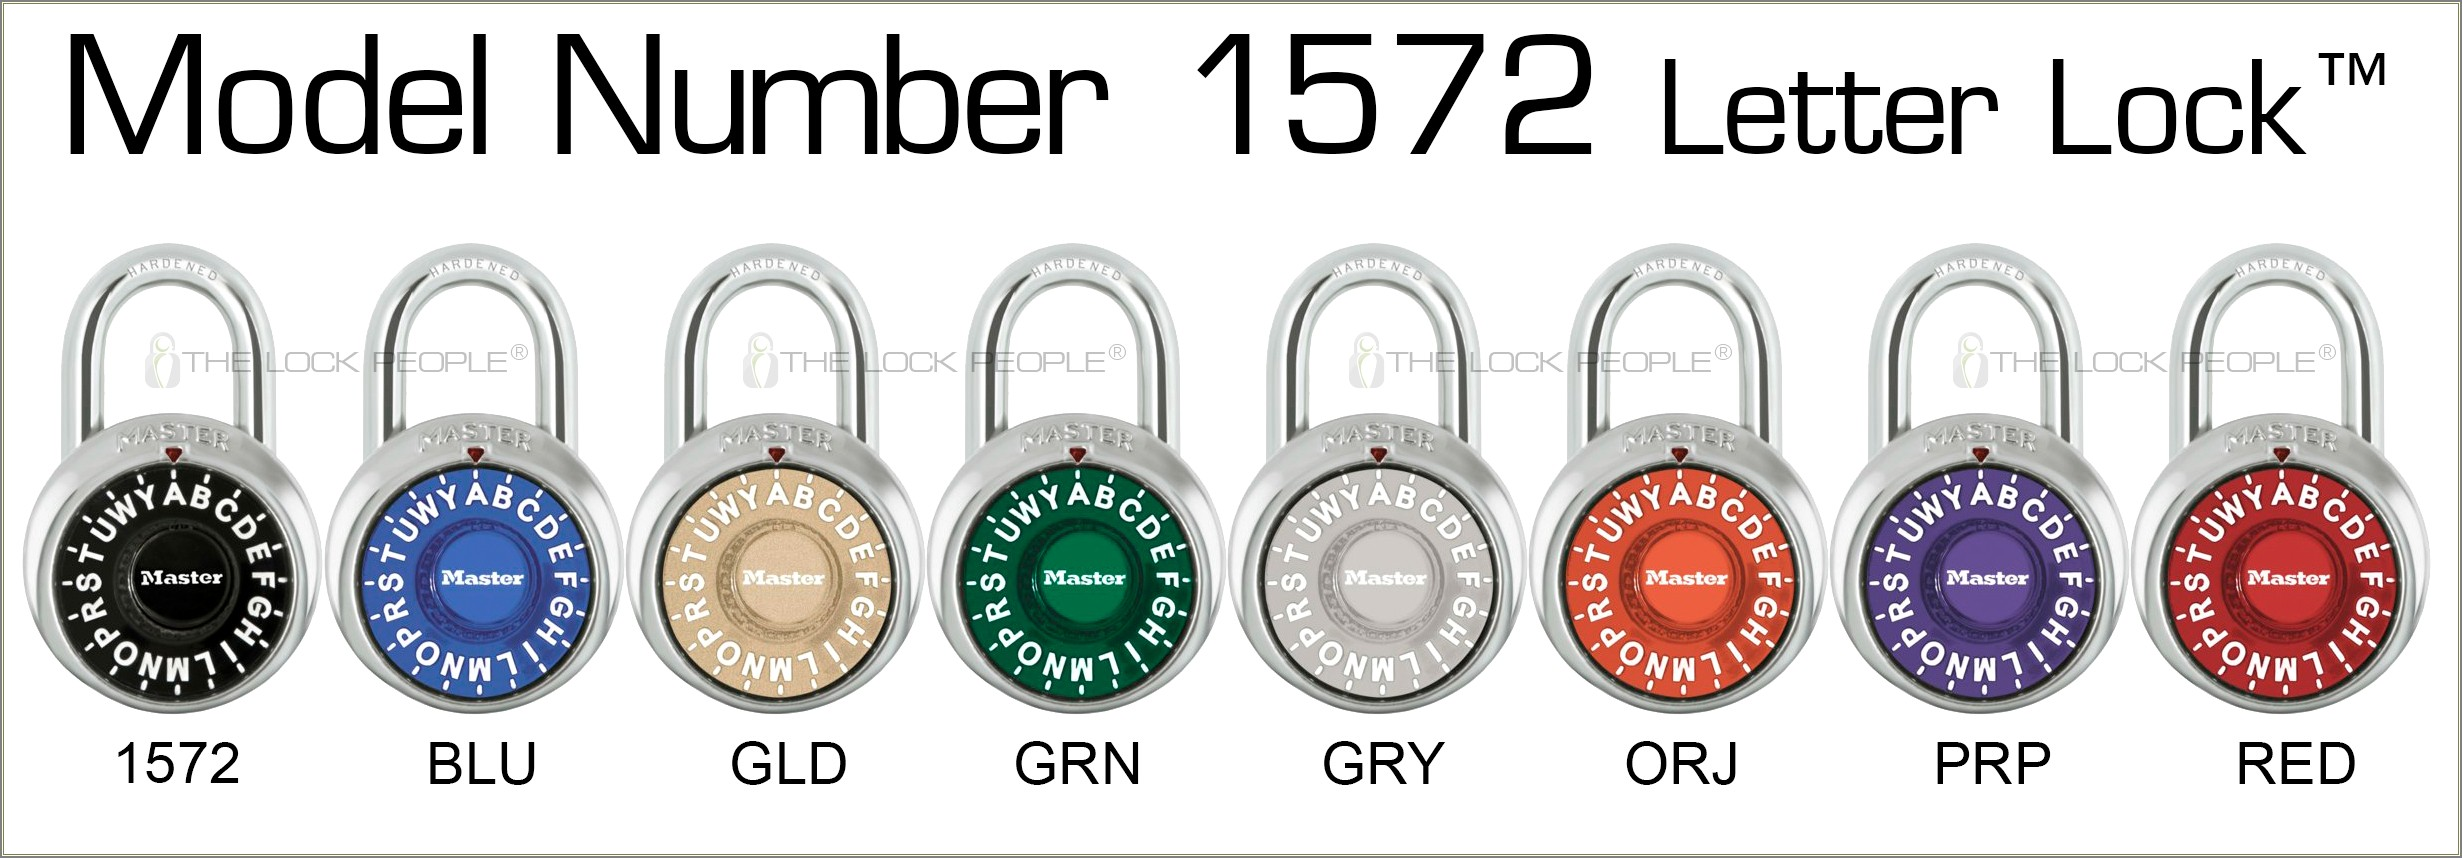 Master Lock Letter Combination Instructions